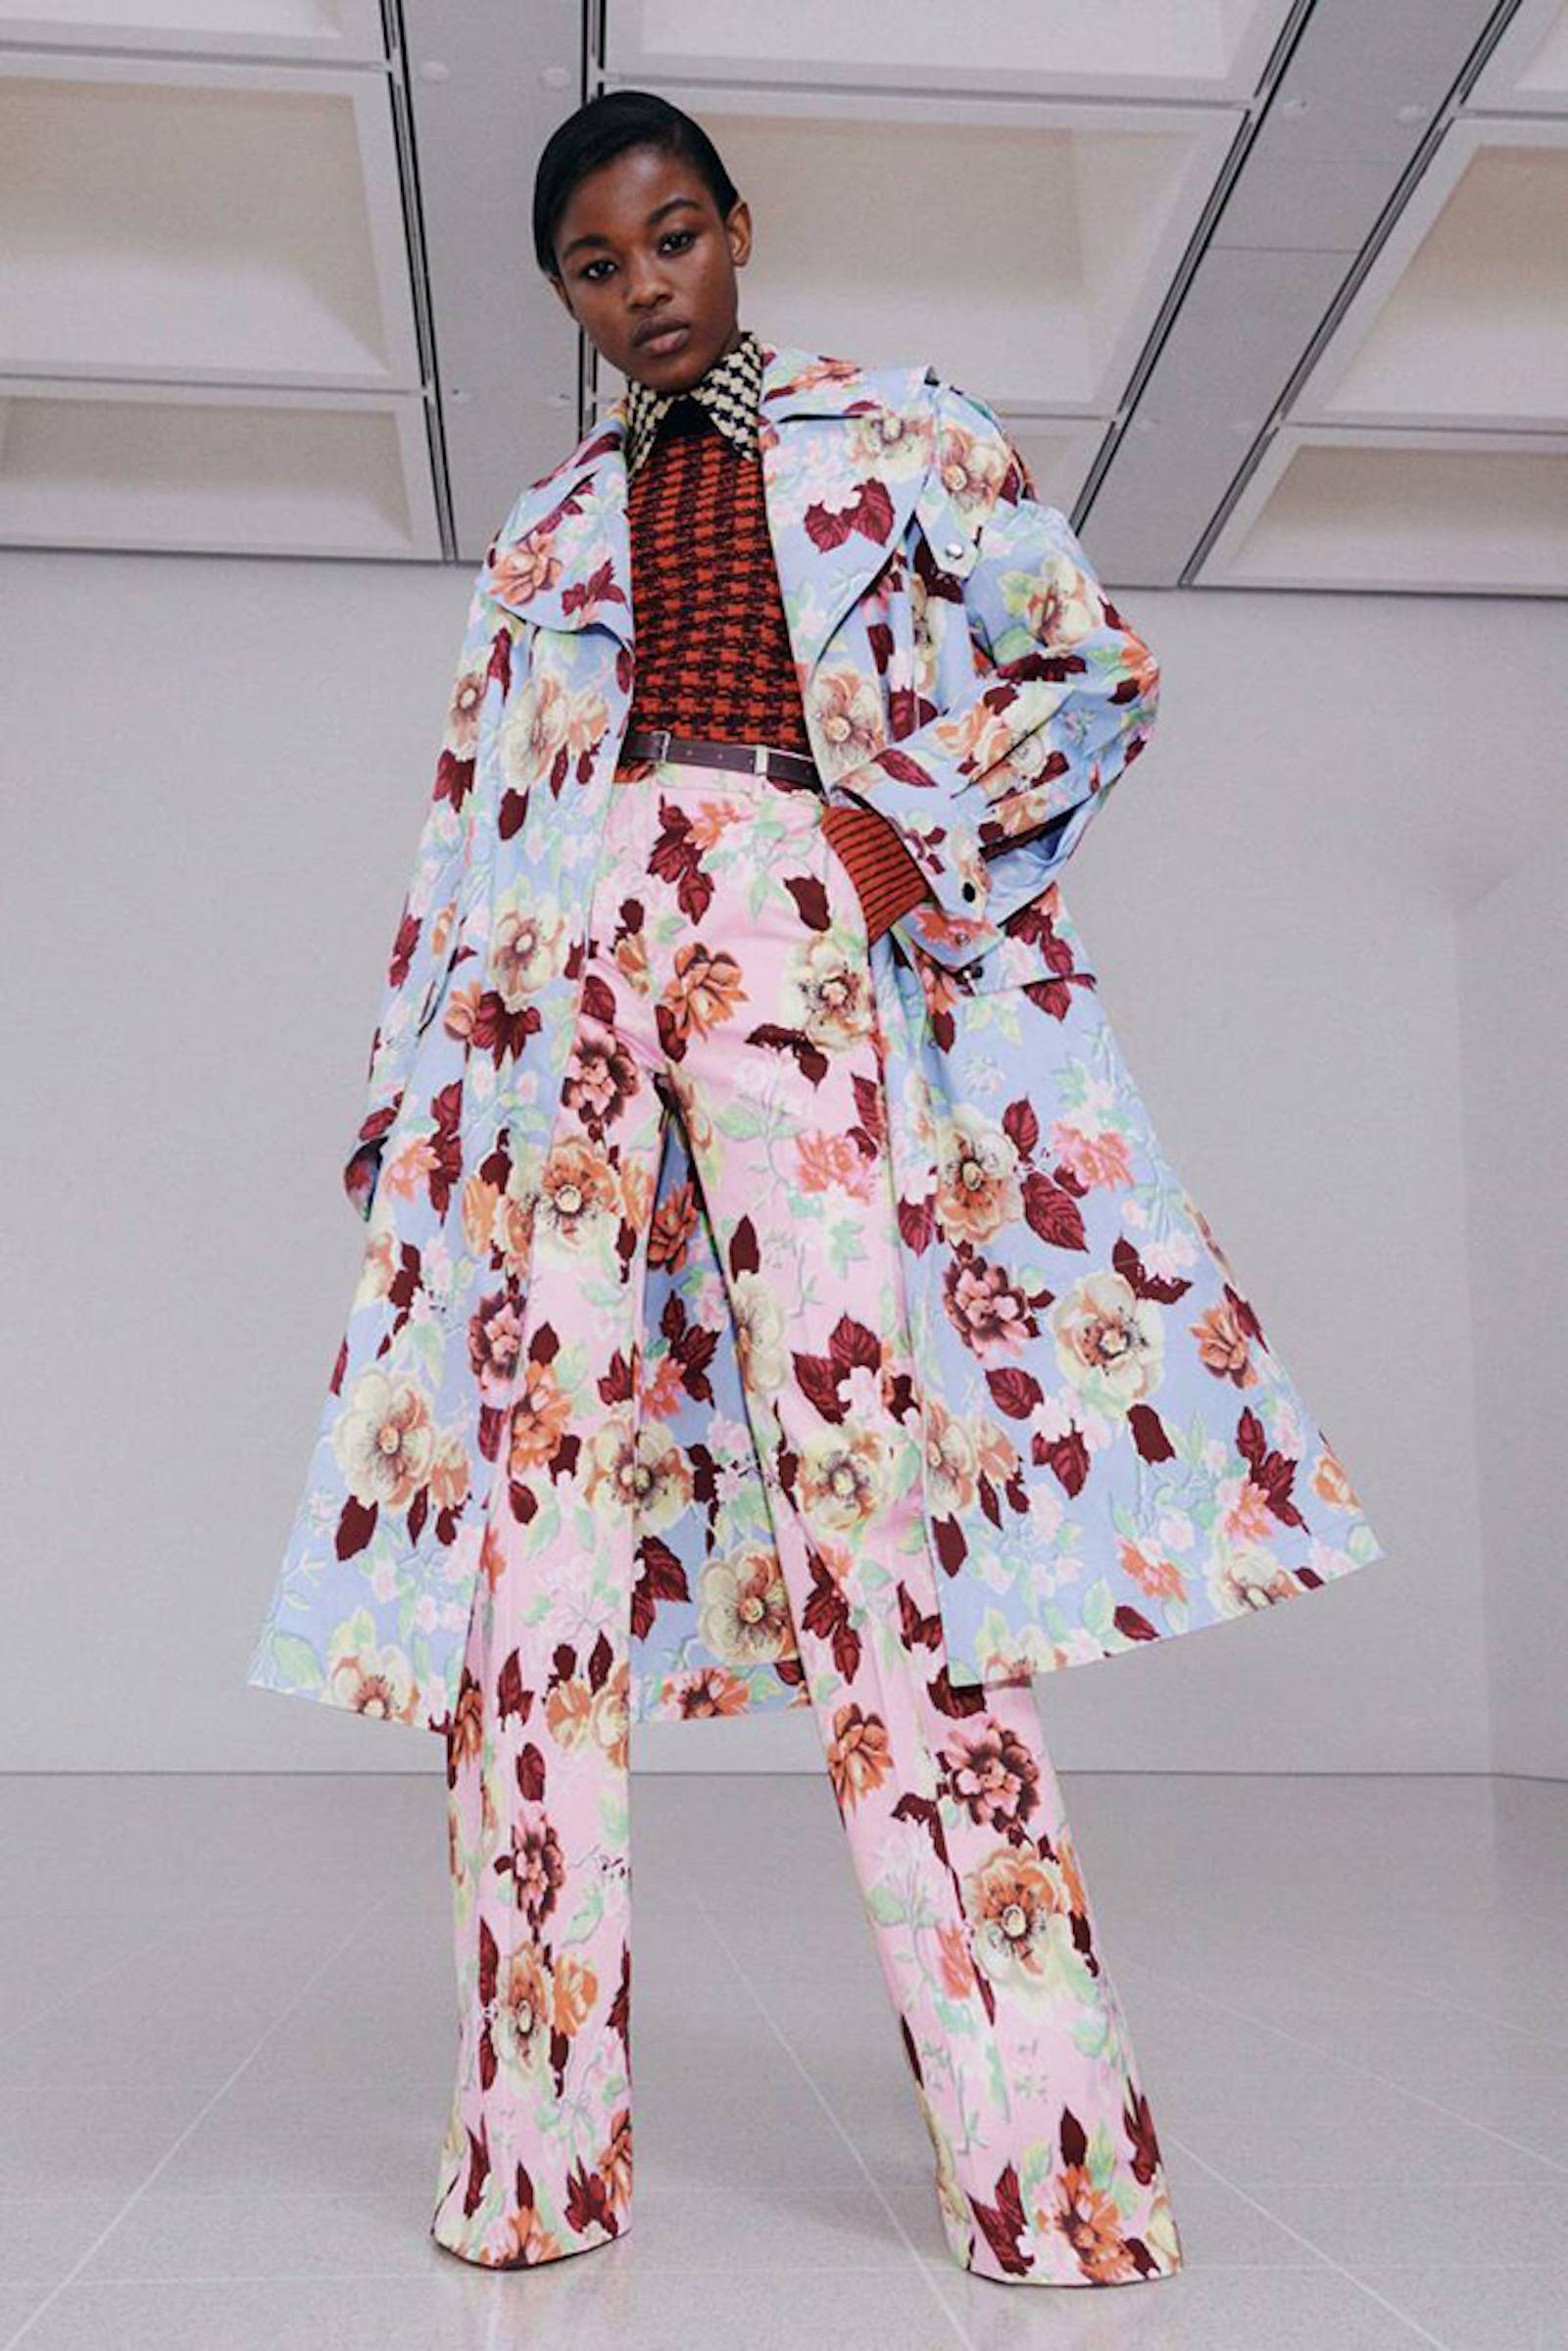 London fashion week shot of woman wearing loud floral and geometric patterned outfit